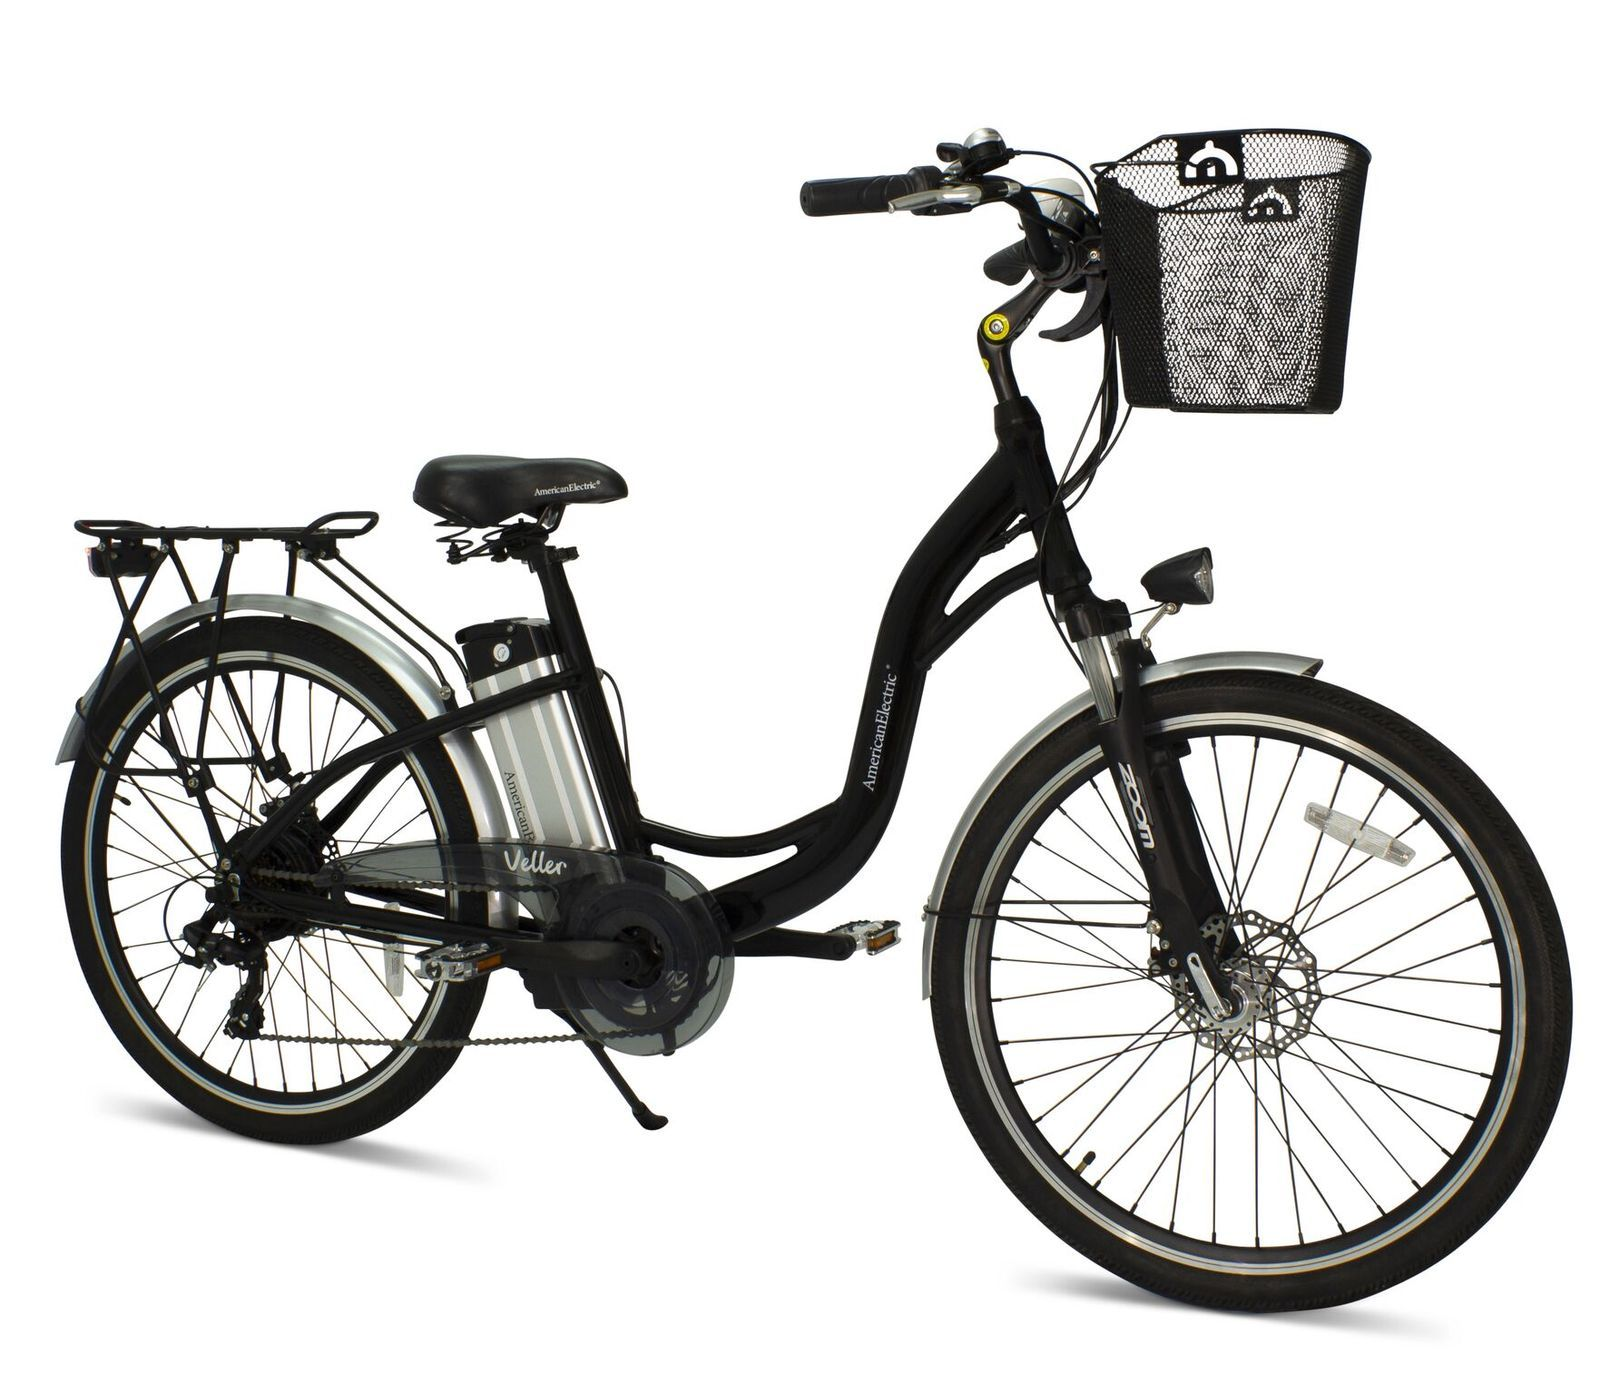 Veller 2021 Electric Bike